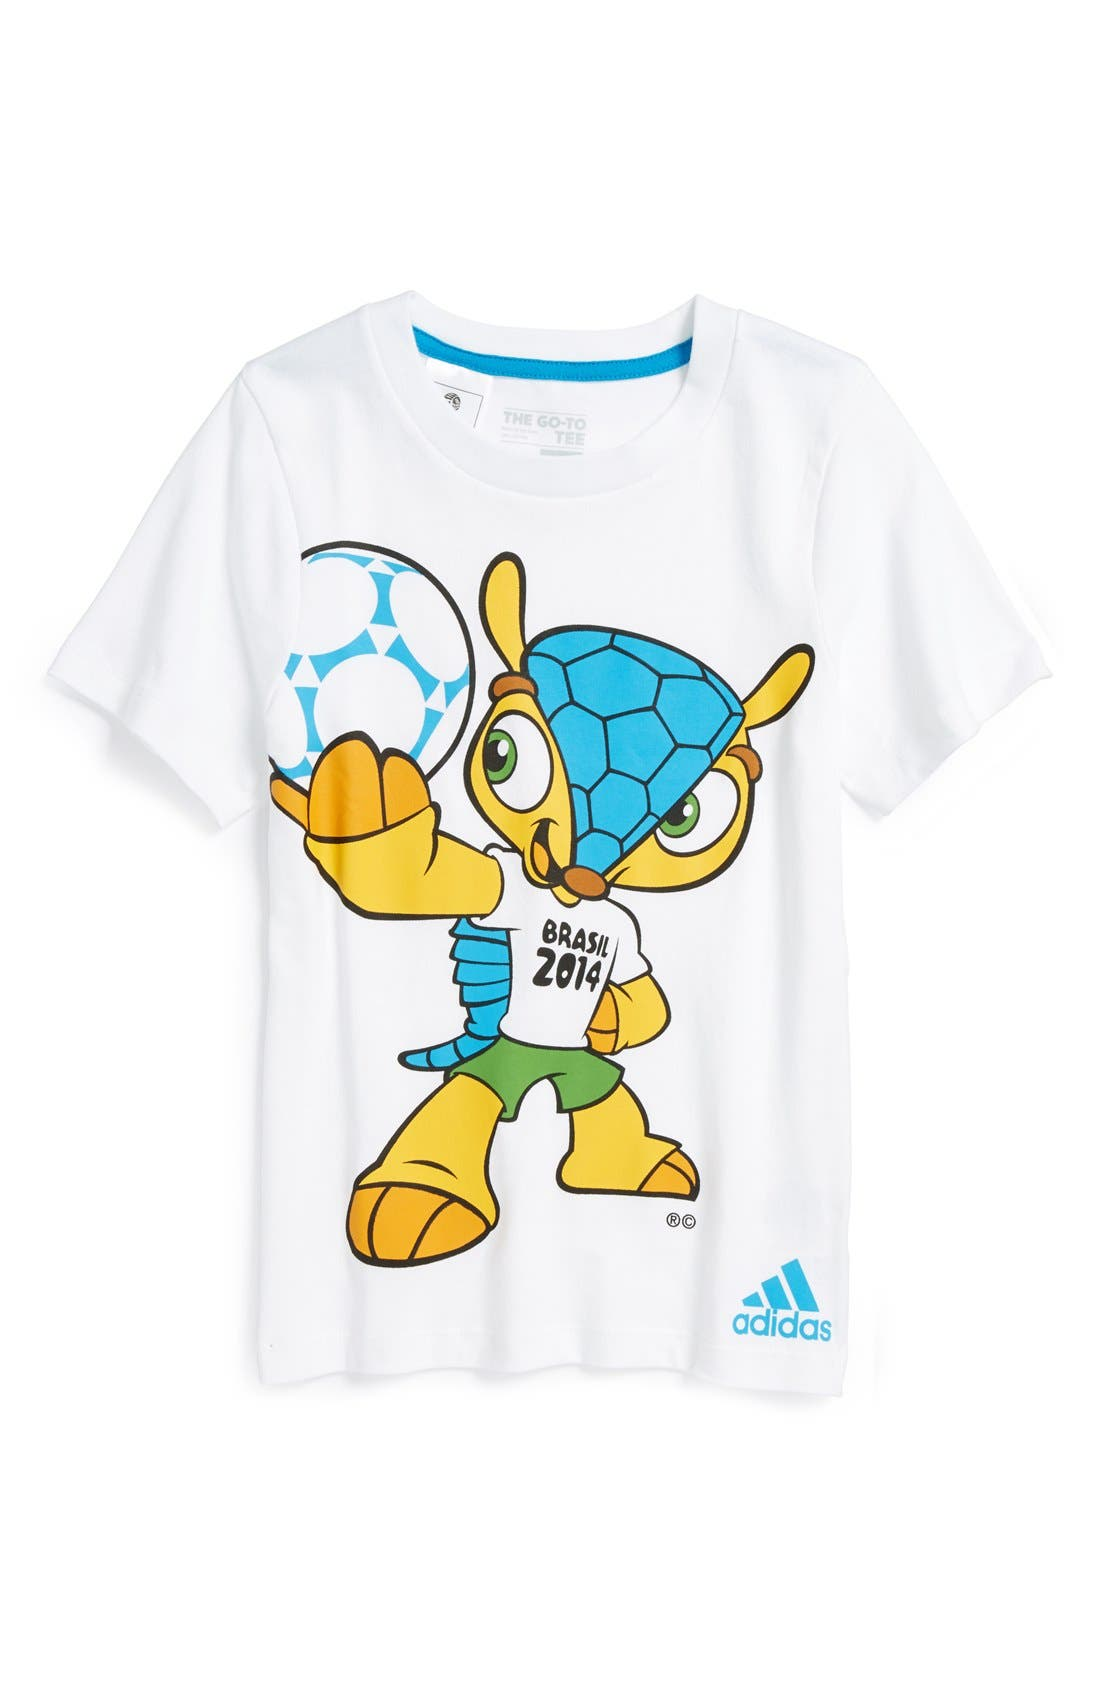 Alternate Image 1 Selected - adidas 'Fuleco - 2014 FIFA World Cup Brasil™' Graphic T-Shirt (Little Boys)